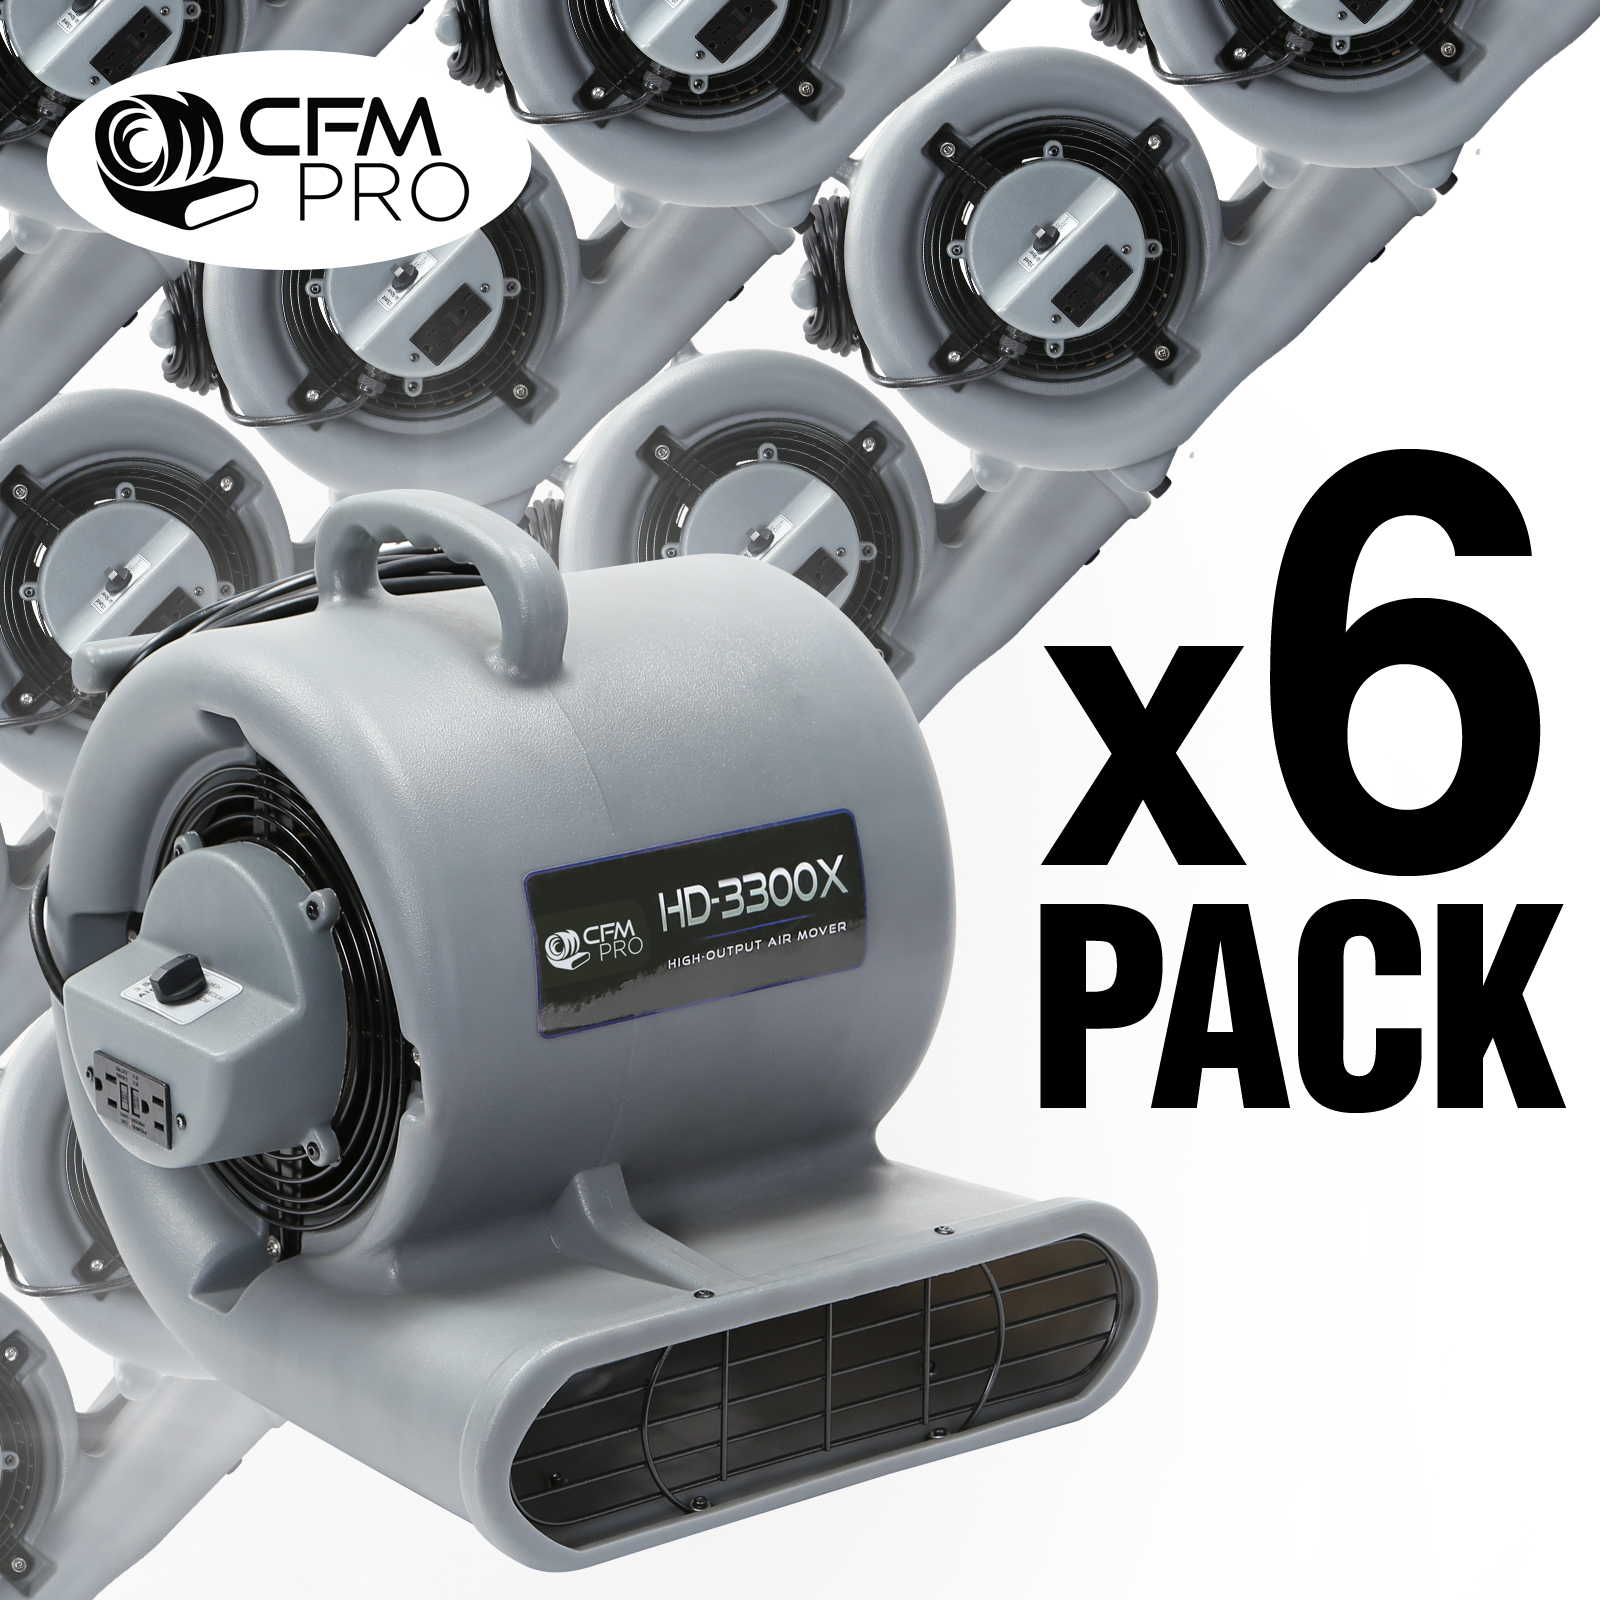 Air Mover 3 Speed 1//3 HP Blower Fan 2 GFCI Outlets Industrial 6 Pack Grey